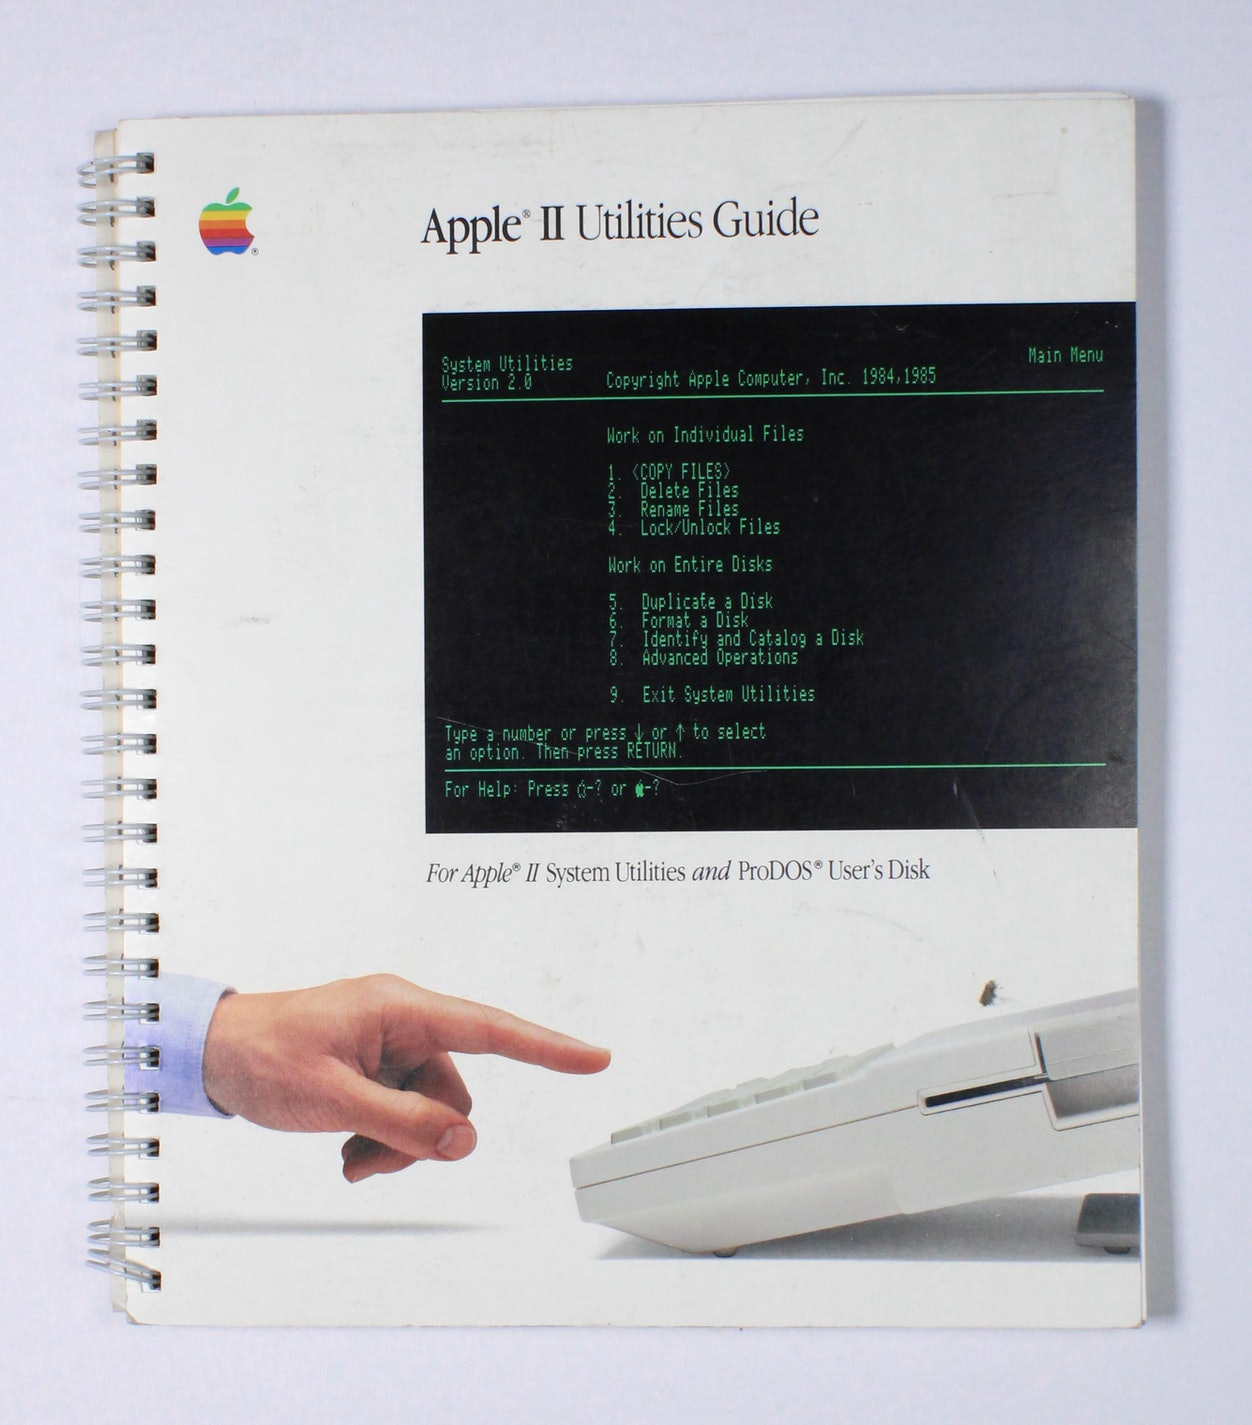 Apple II Utilities Guide